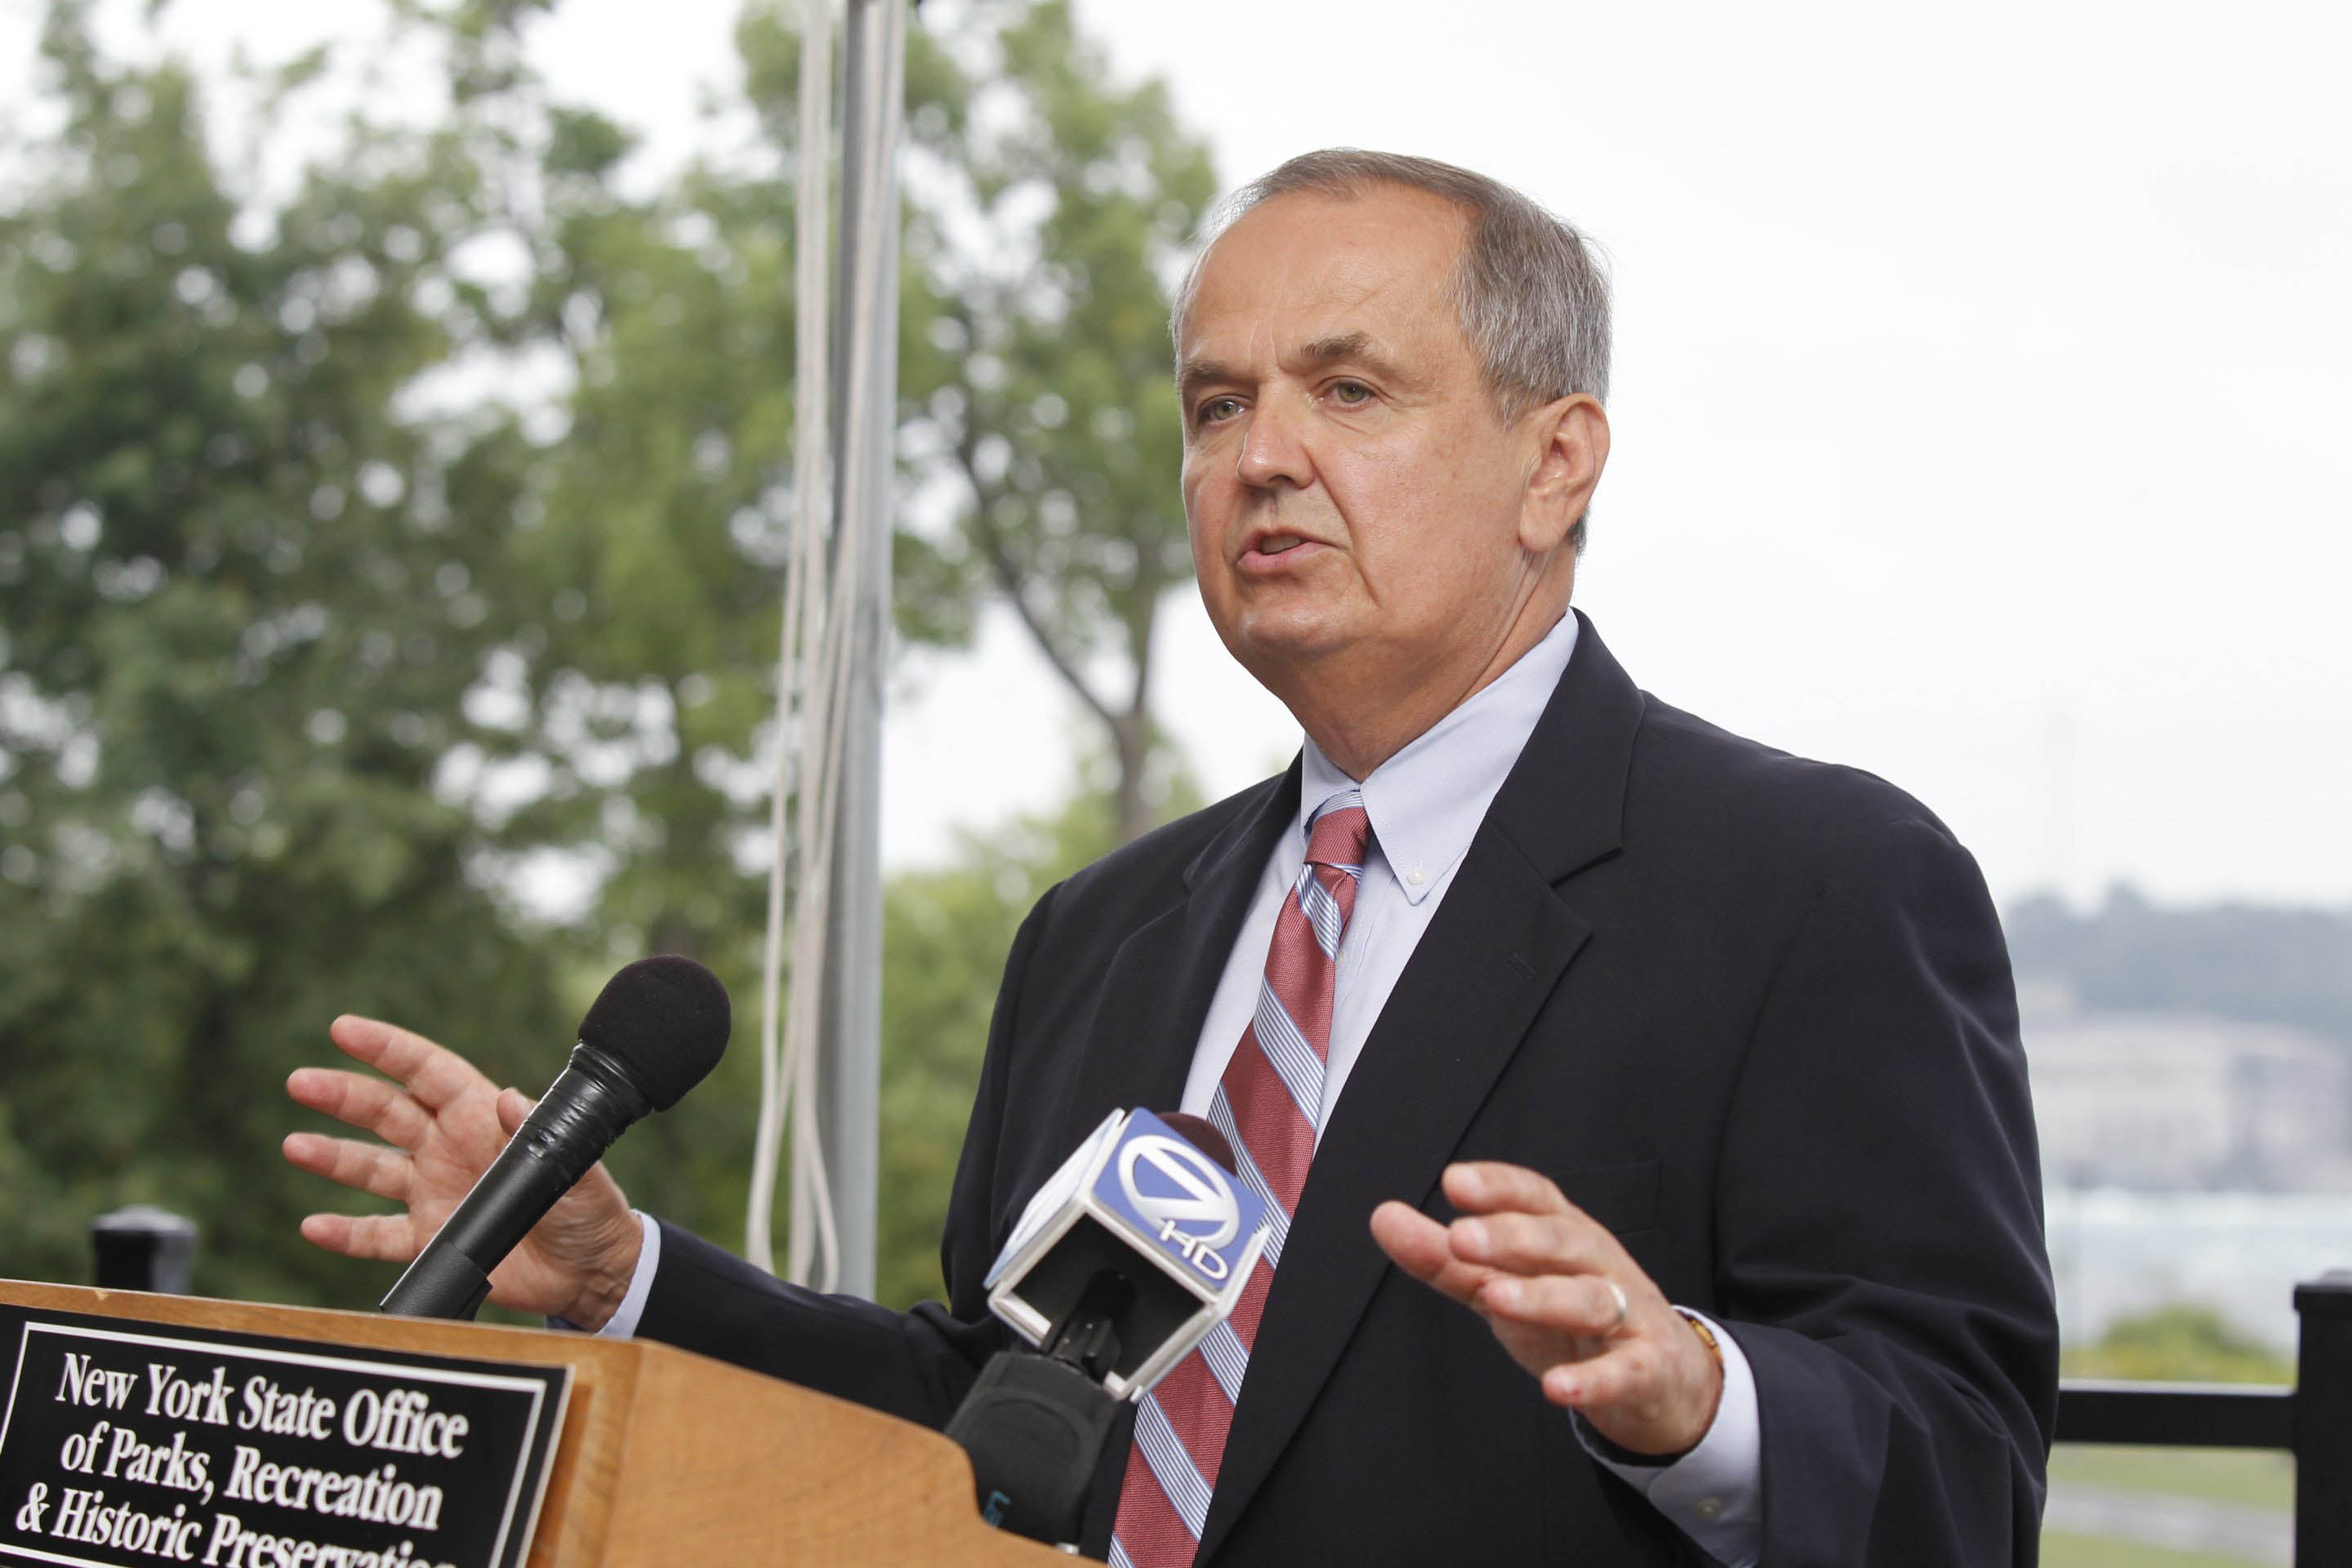 A grand jury heard testimony Thursday in the investigation of former State Sen. George Maziarz and his campaign finances. (Harry Scull Jr. / Buffalo News file photo)